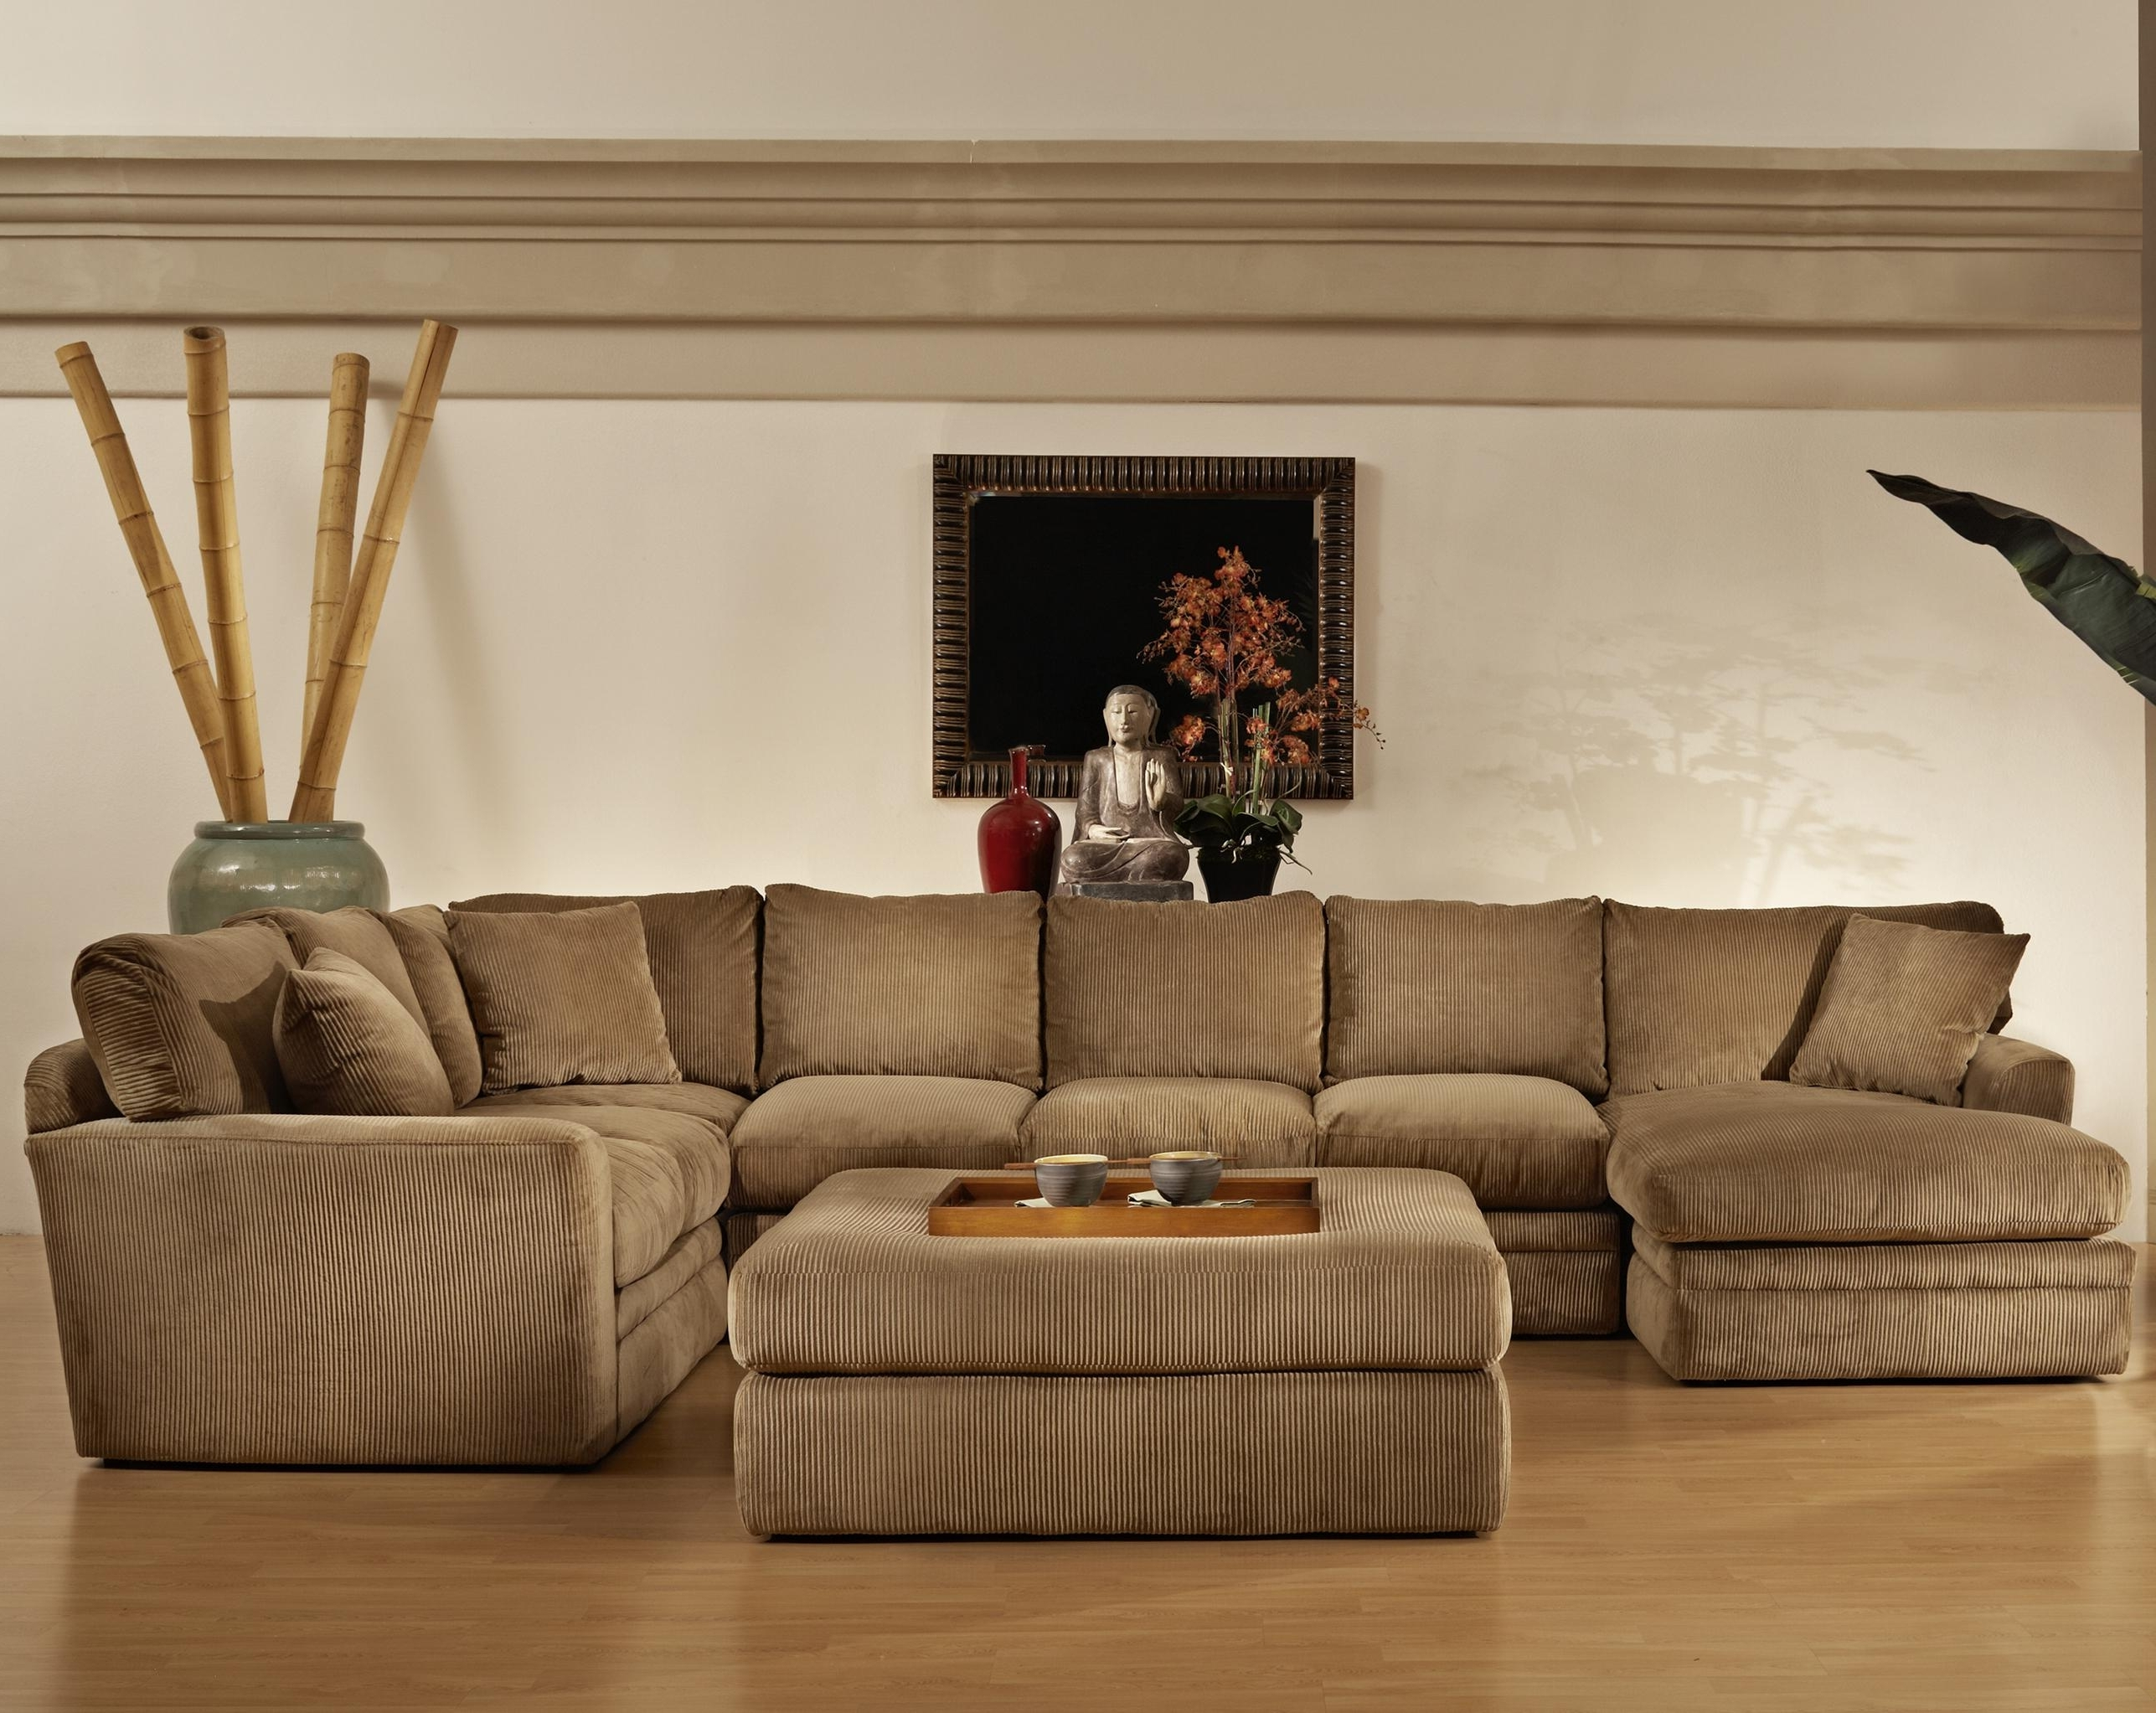 Most Popular Living Room Design: Comfy Sofa Sectionals For Home Interior Design Regarding Leather Sectional Sofas With Chaise (View 11 of 15)